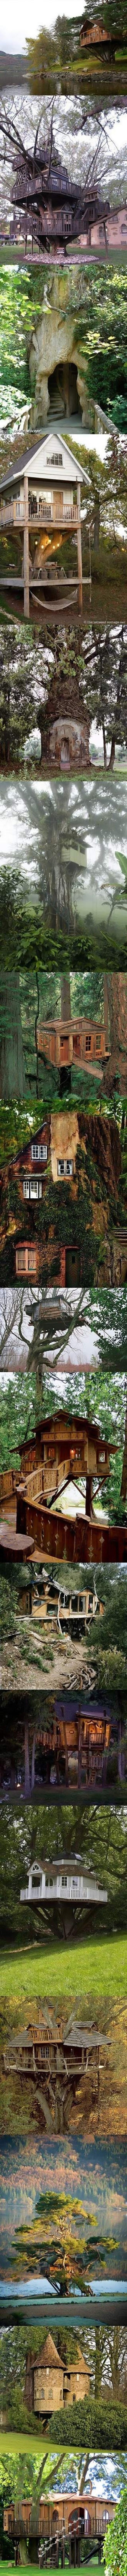 Really Awesome Treehouses | FB TroublemakersFB Troublemakers ...